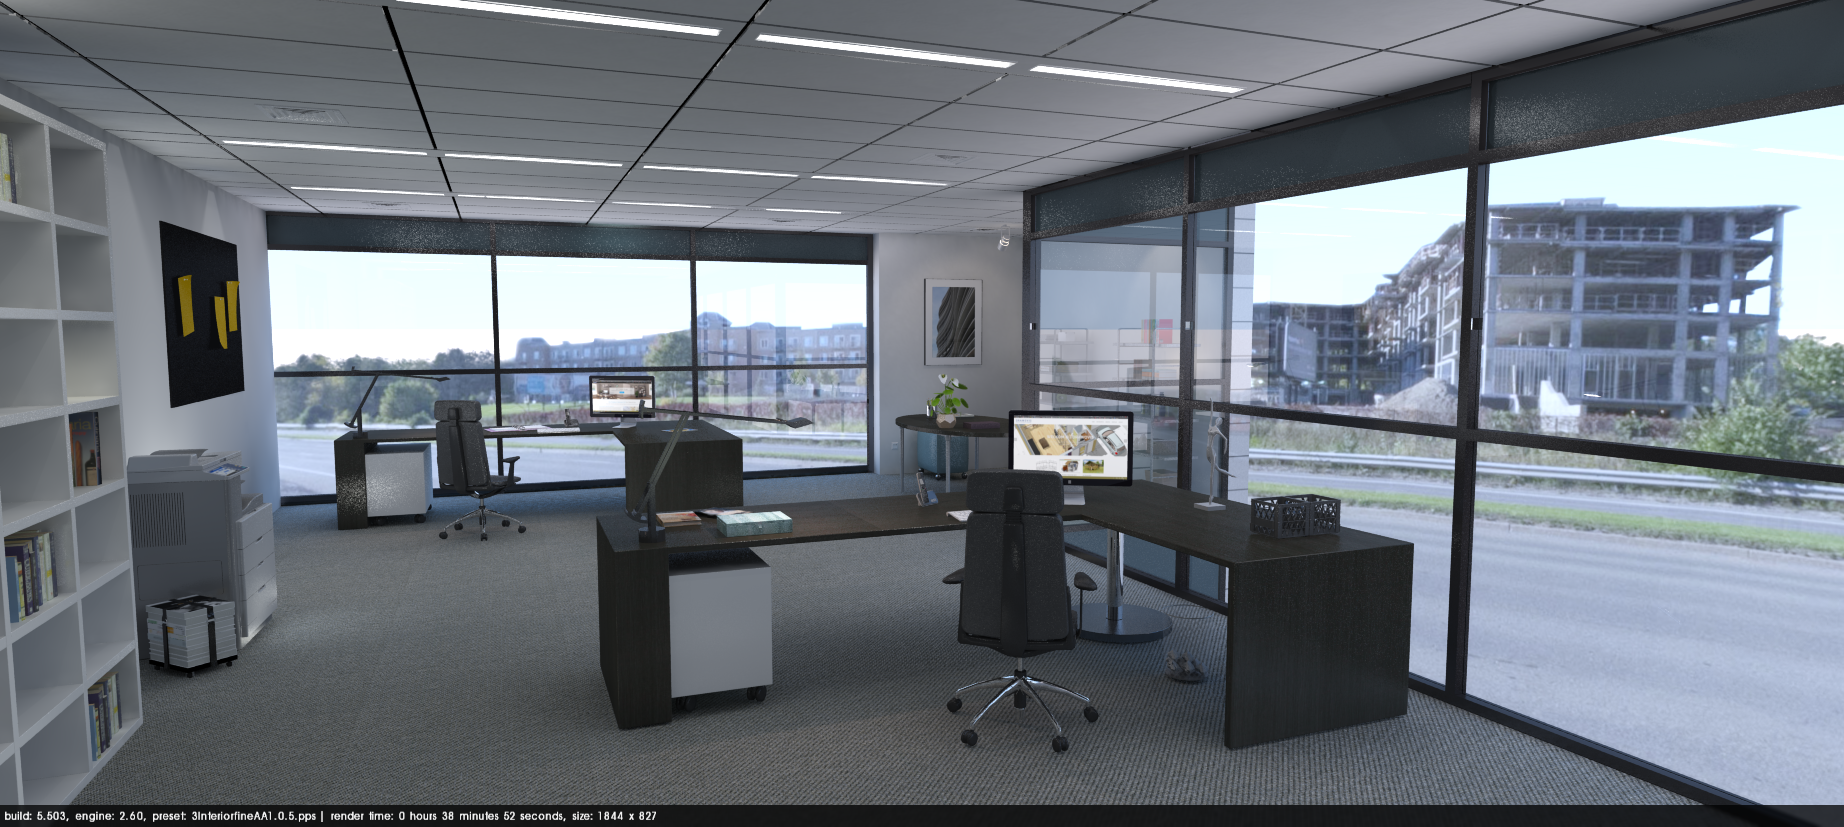 Interieur-office-v6-no-exterior-orglights 2018-10-30 08341400000.png